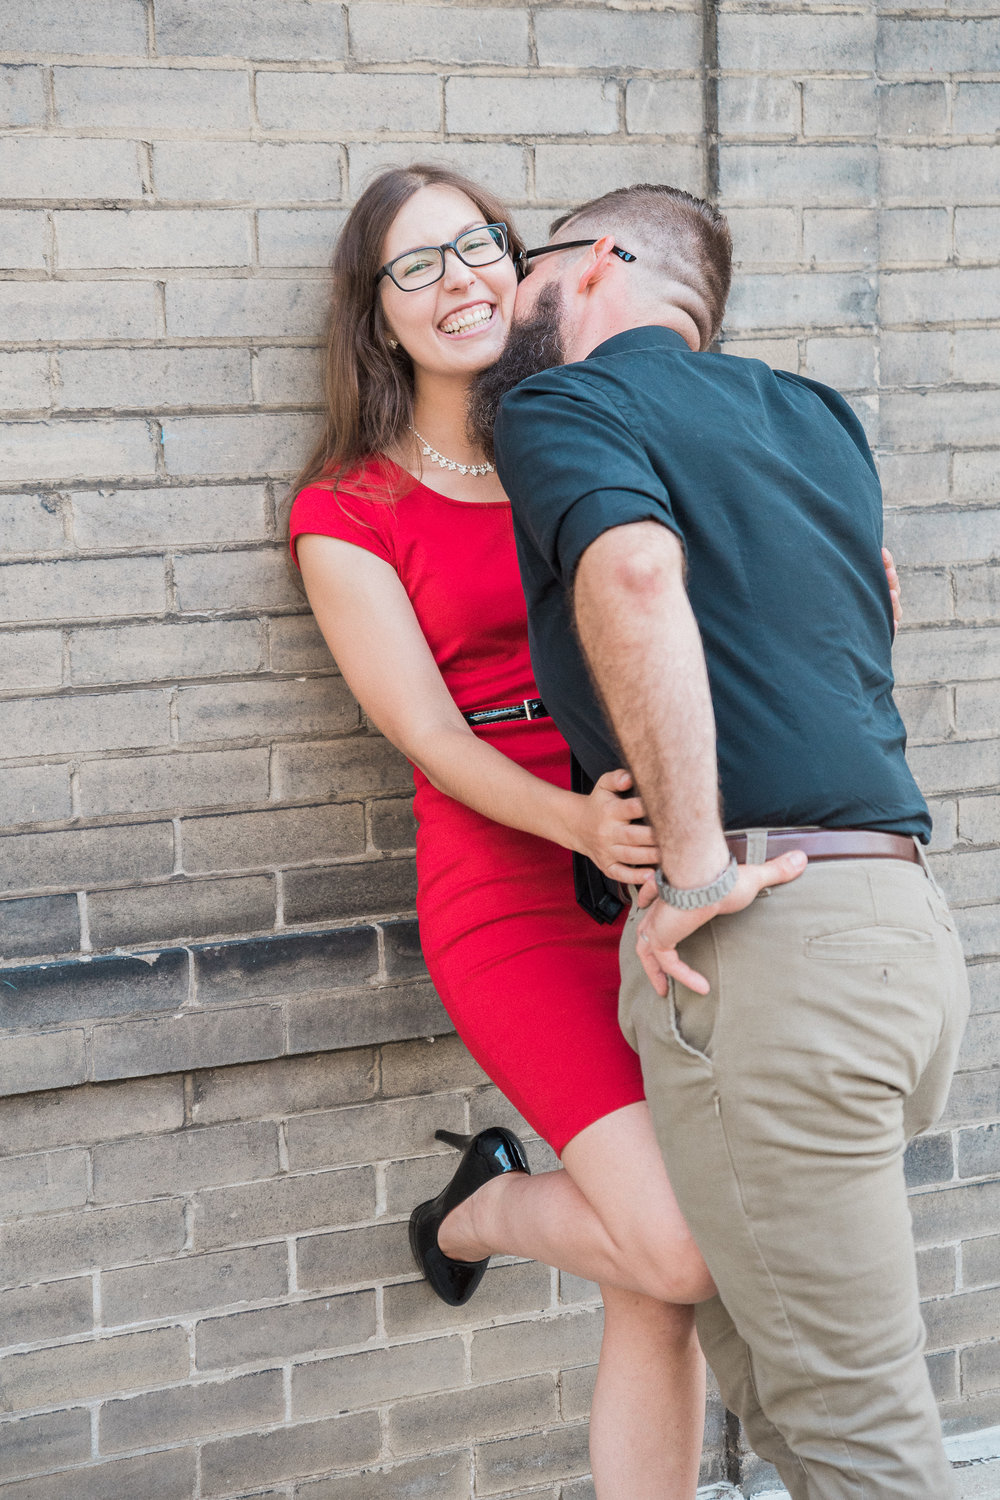 Woman smiles and leans back into a brick wall as her fiance kisses her neck.